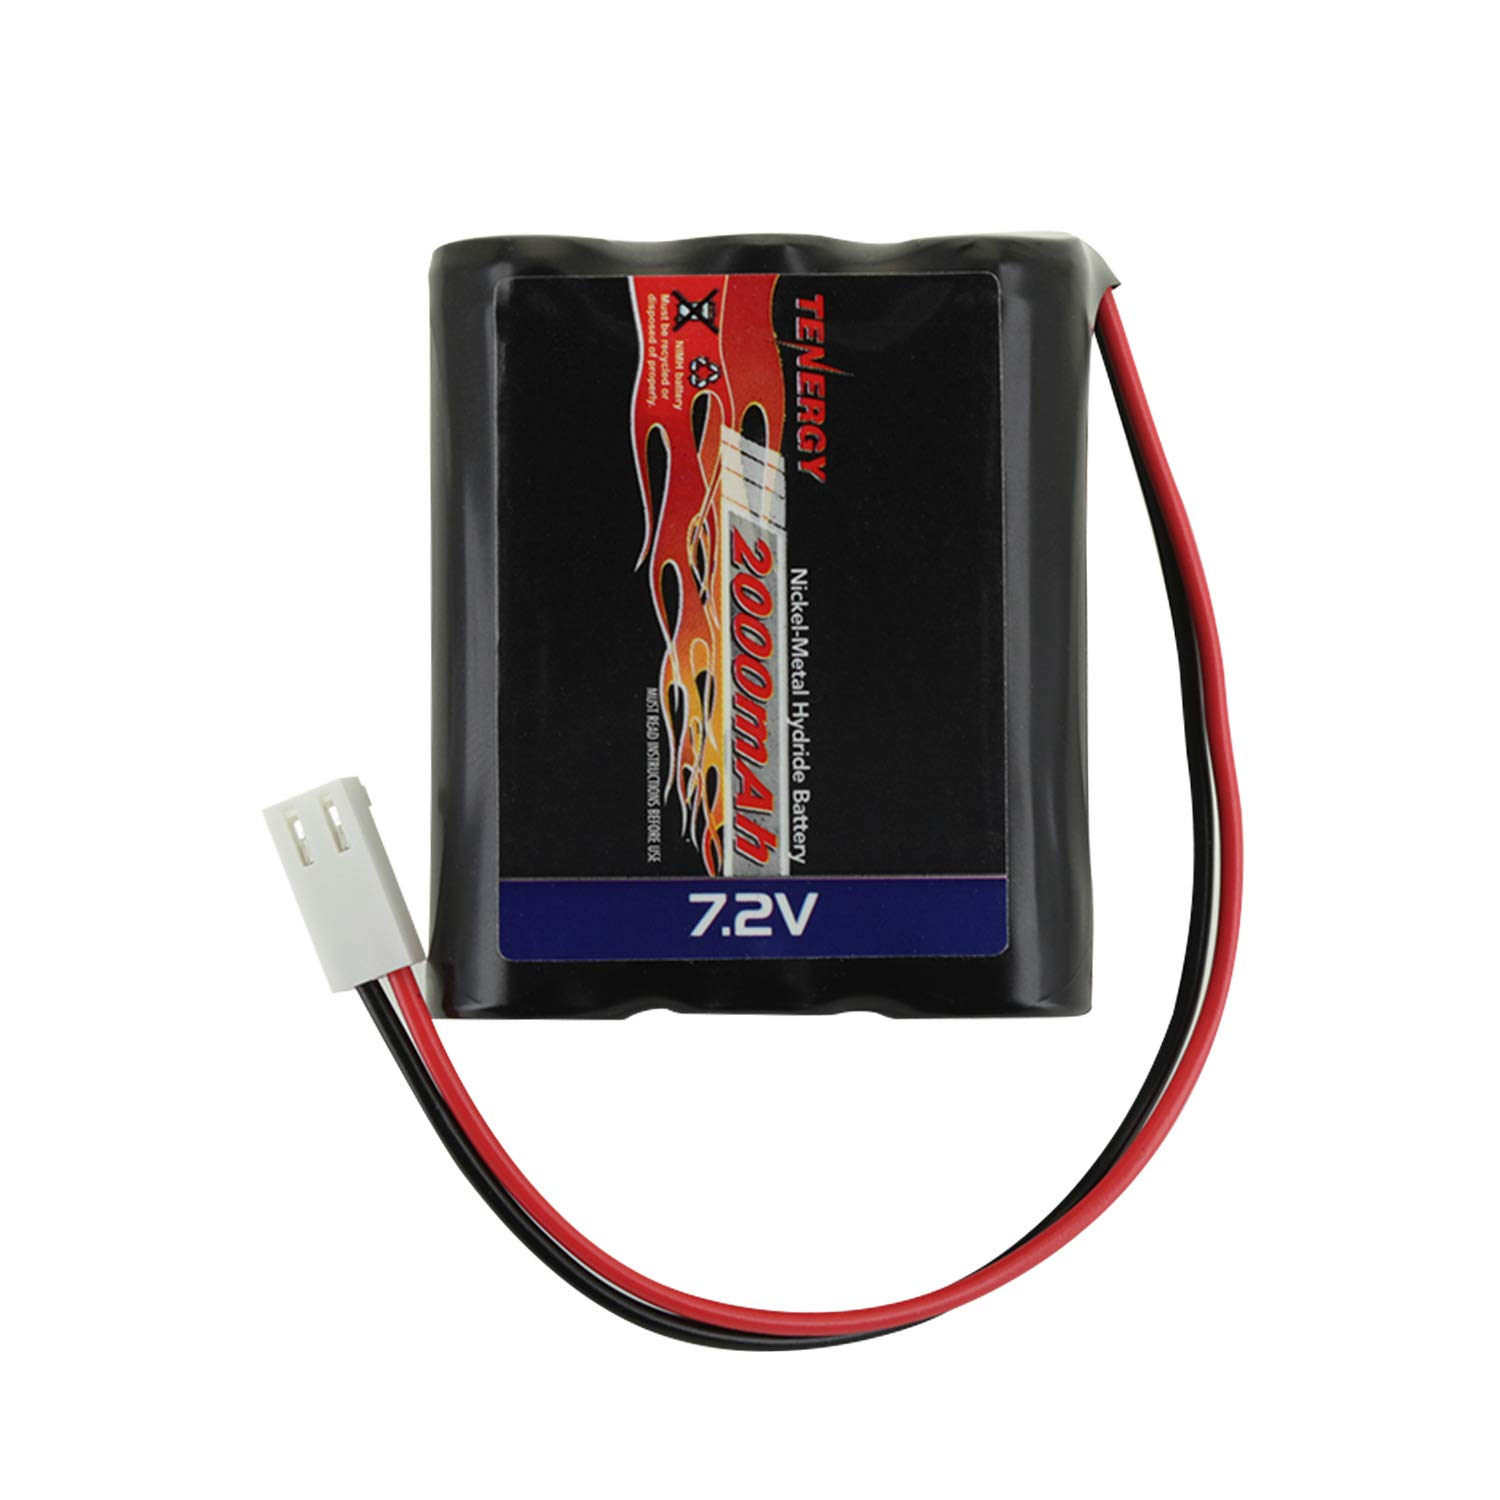 7.2V Tenergy 2000 mAH NiMH Square Rechargeable Battery Pack for Walking Robots and RC Planes